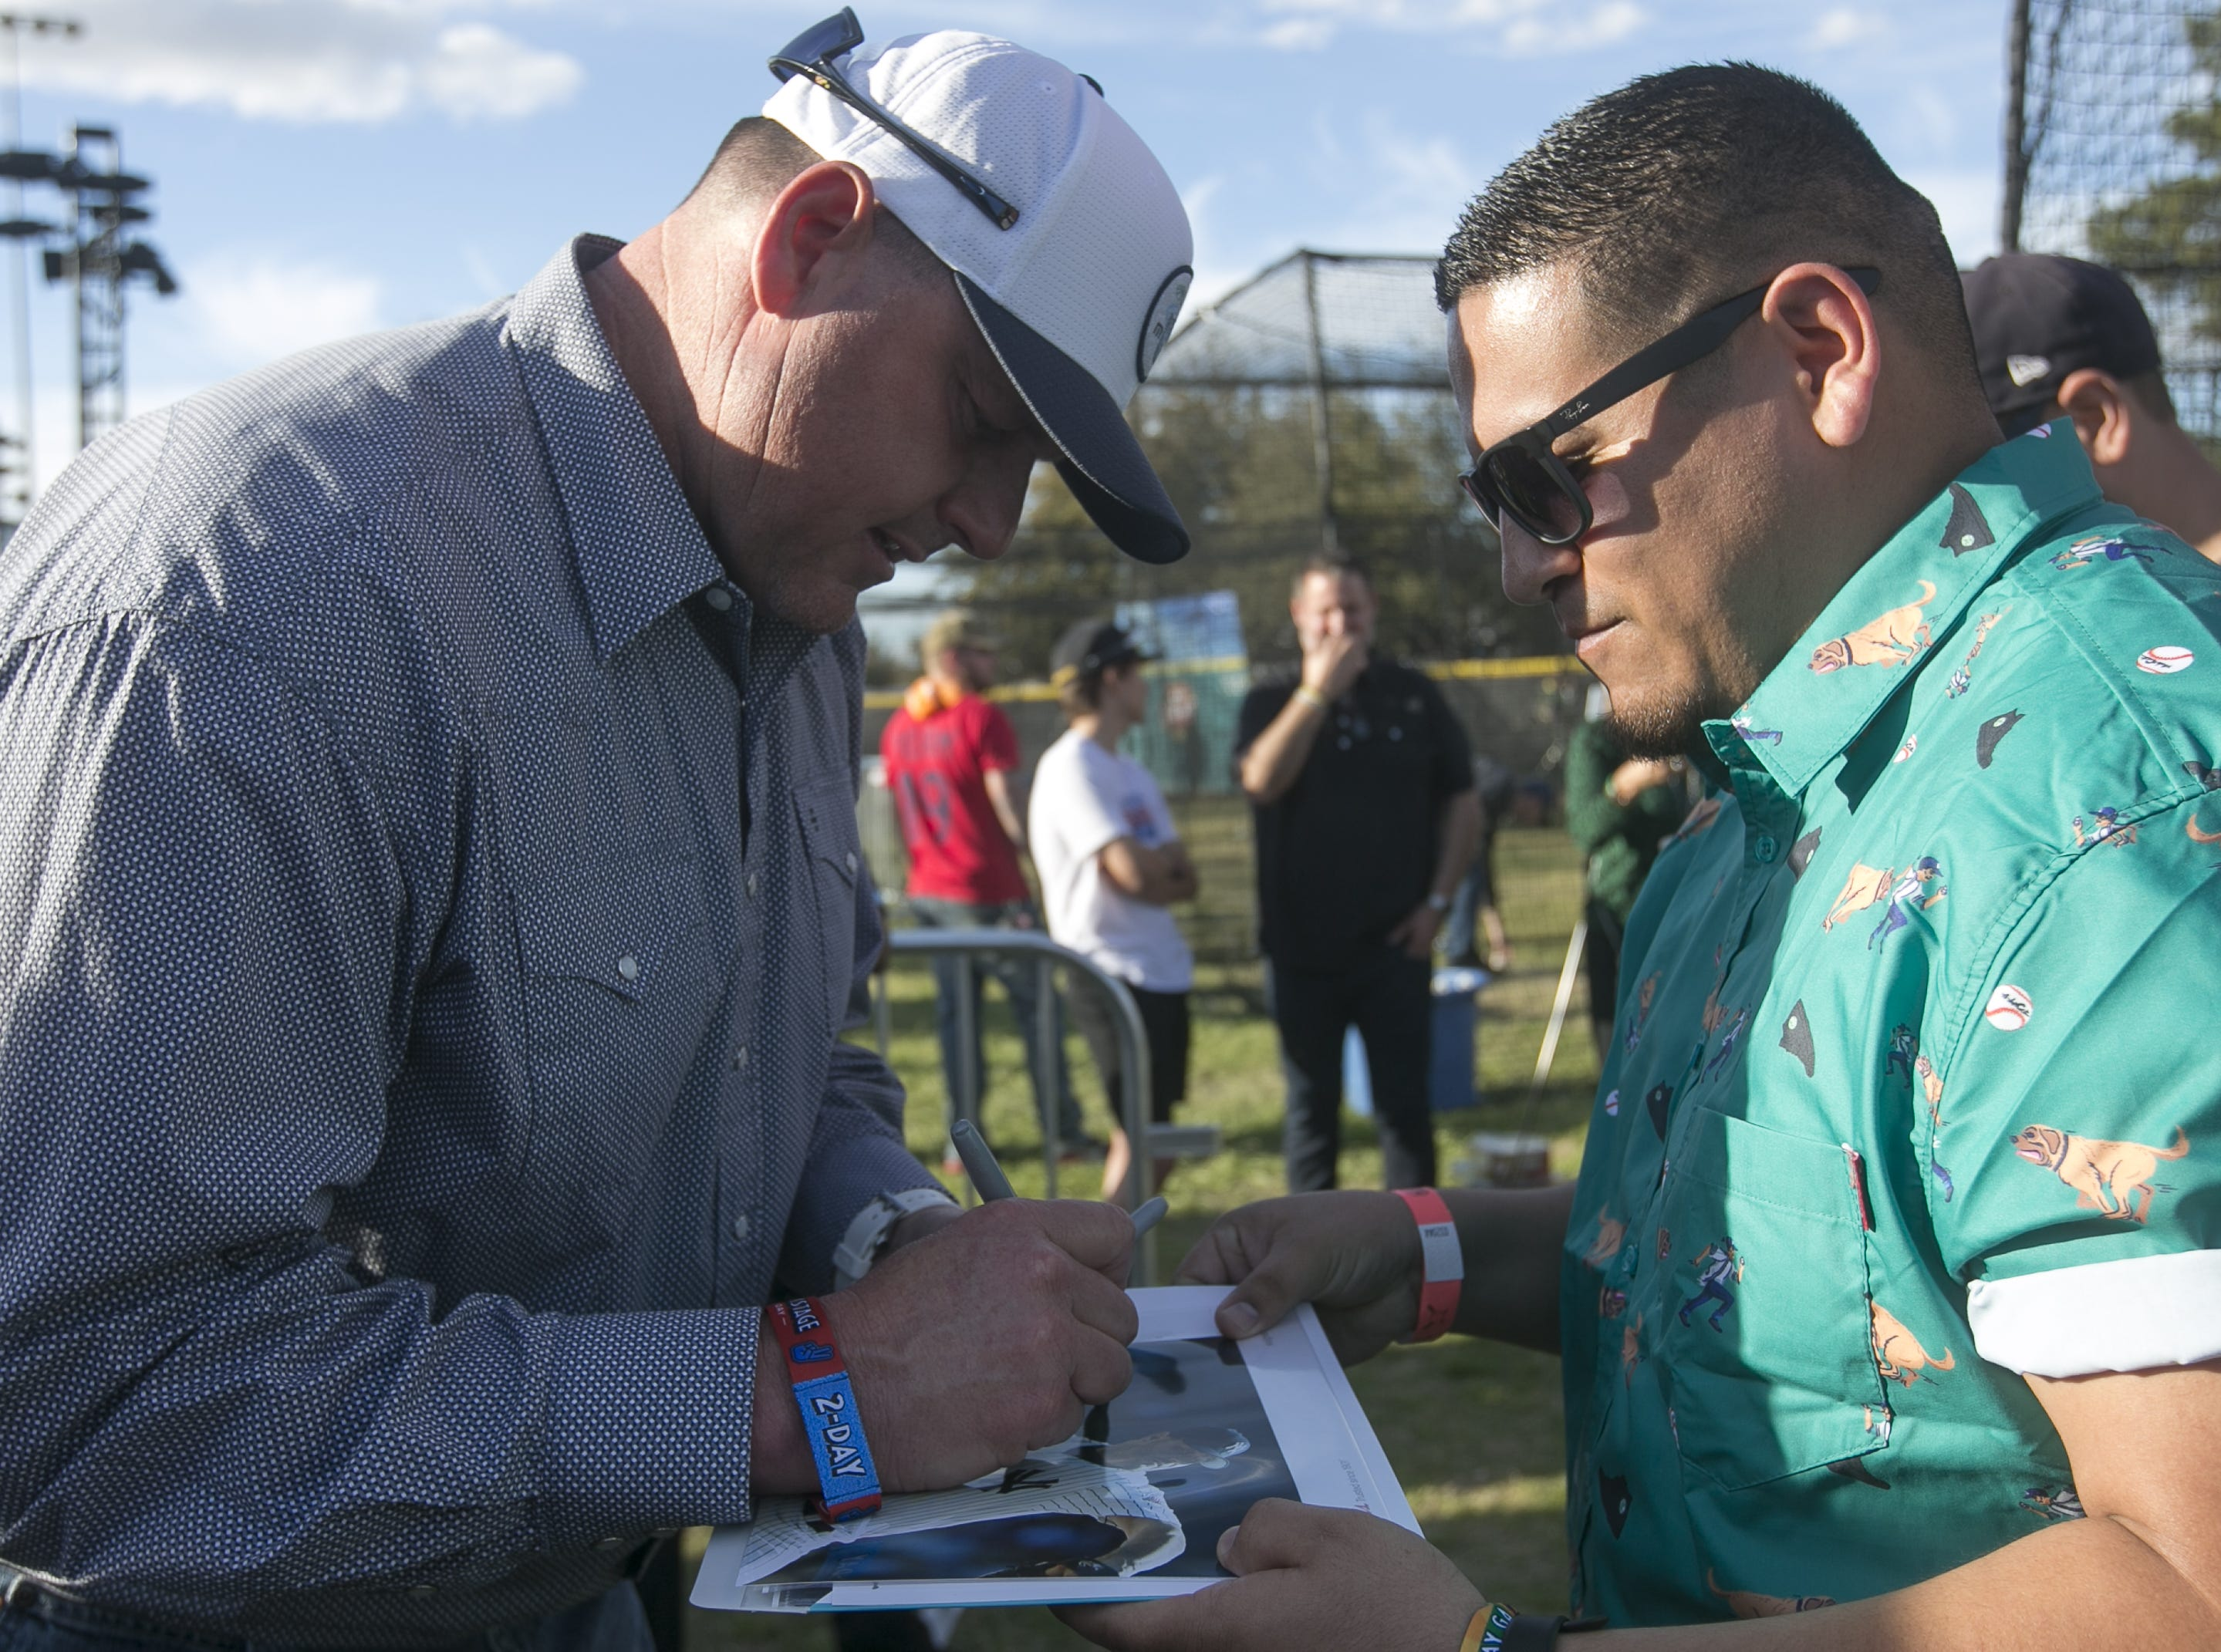 Former MLB pitcher Roger Clemens signs autographs at the Innings Festival at Tempe Beach Park on March 3, 2019.